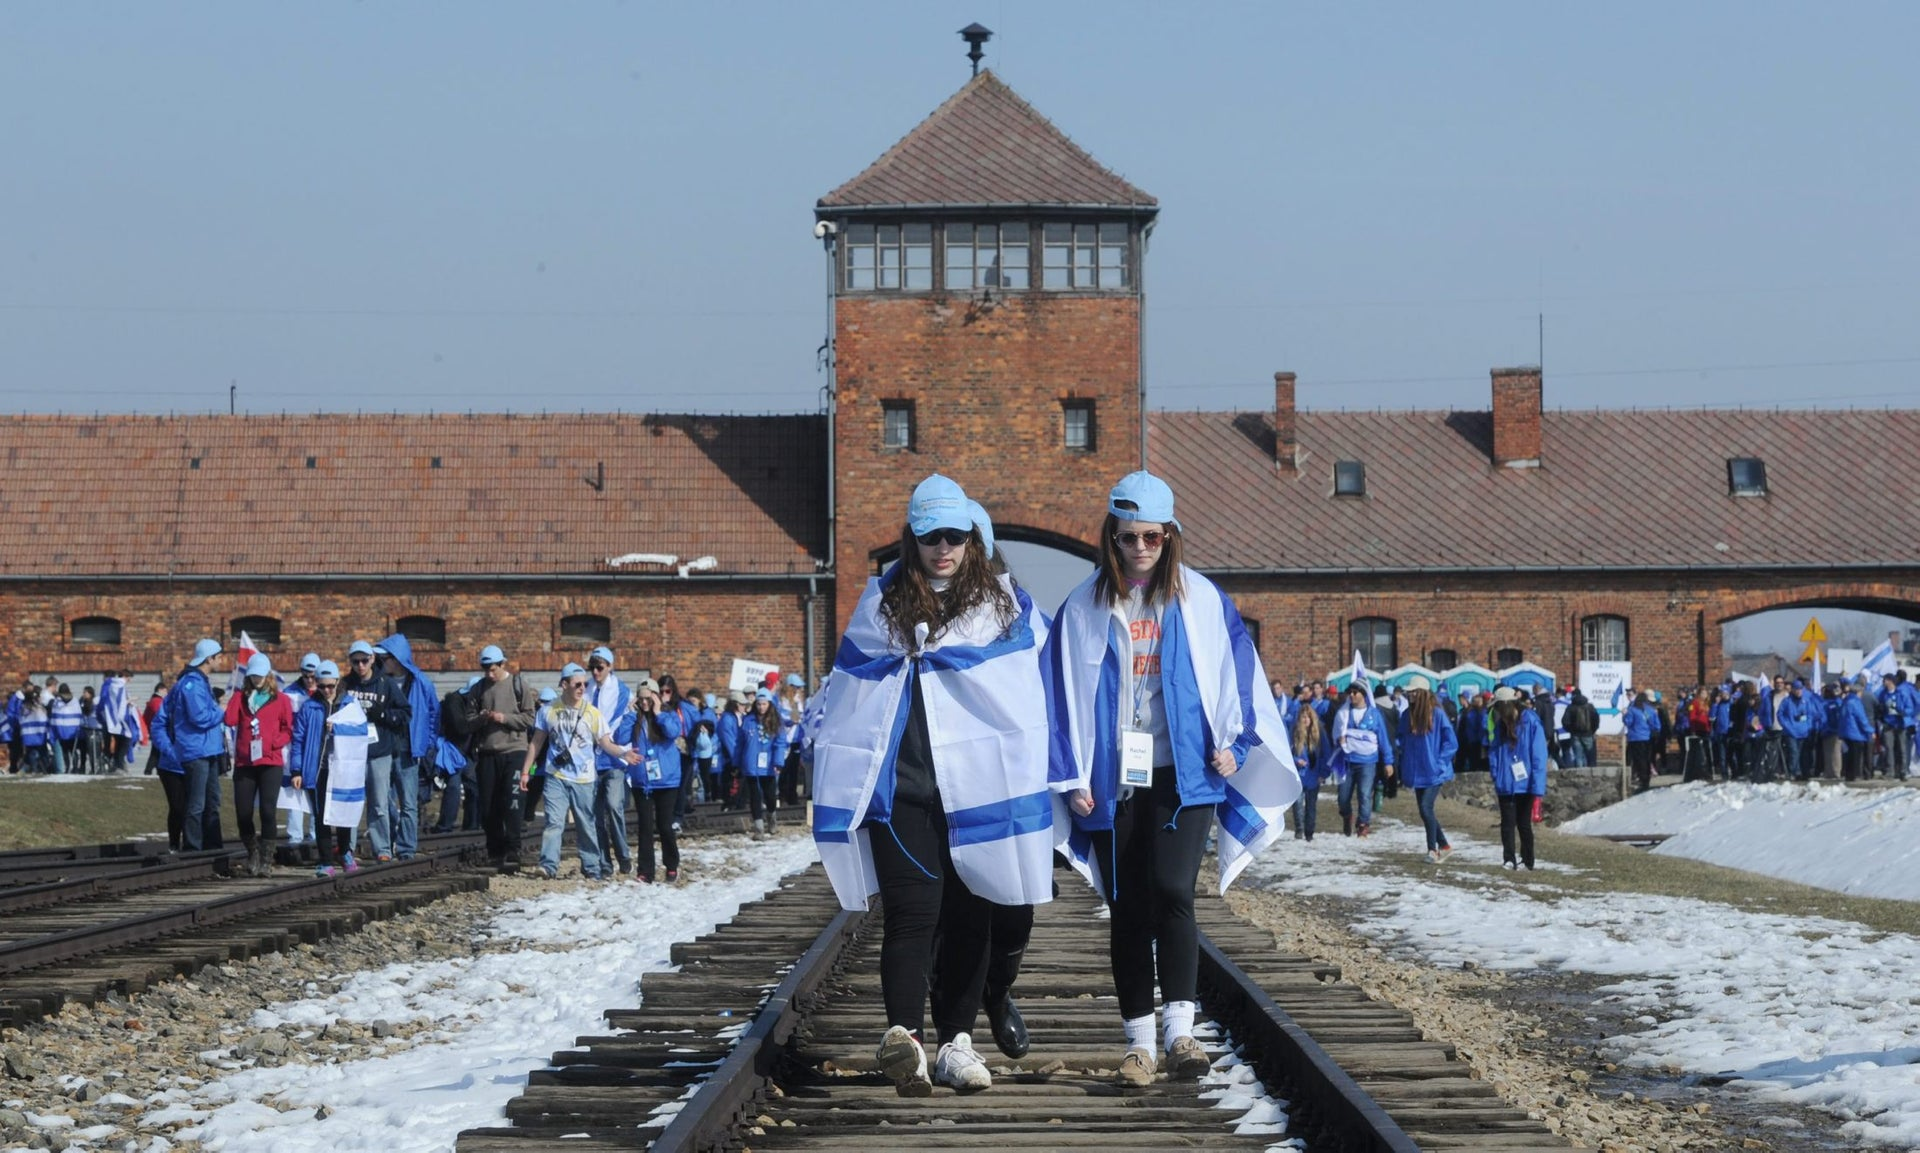 Participants of the March of the Living walk in the former Nazi Death Camp Auschwitz Birkenau, Poland, April 8, 2013.